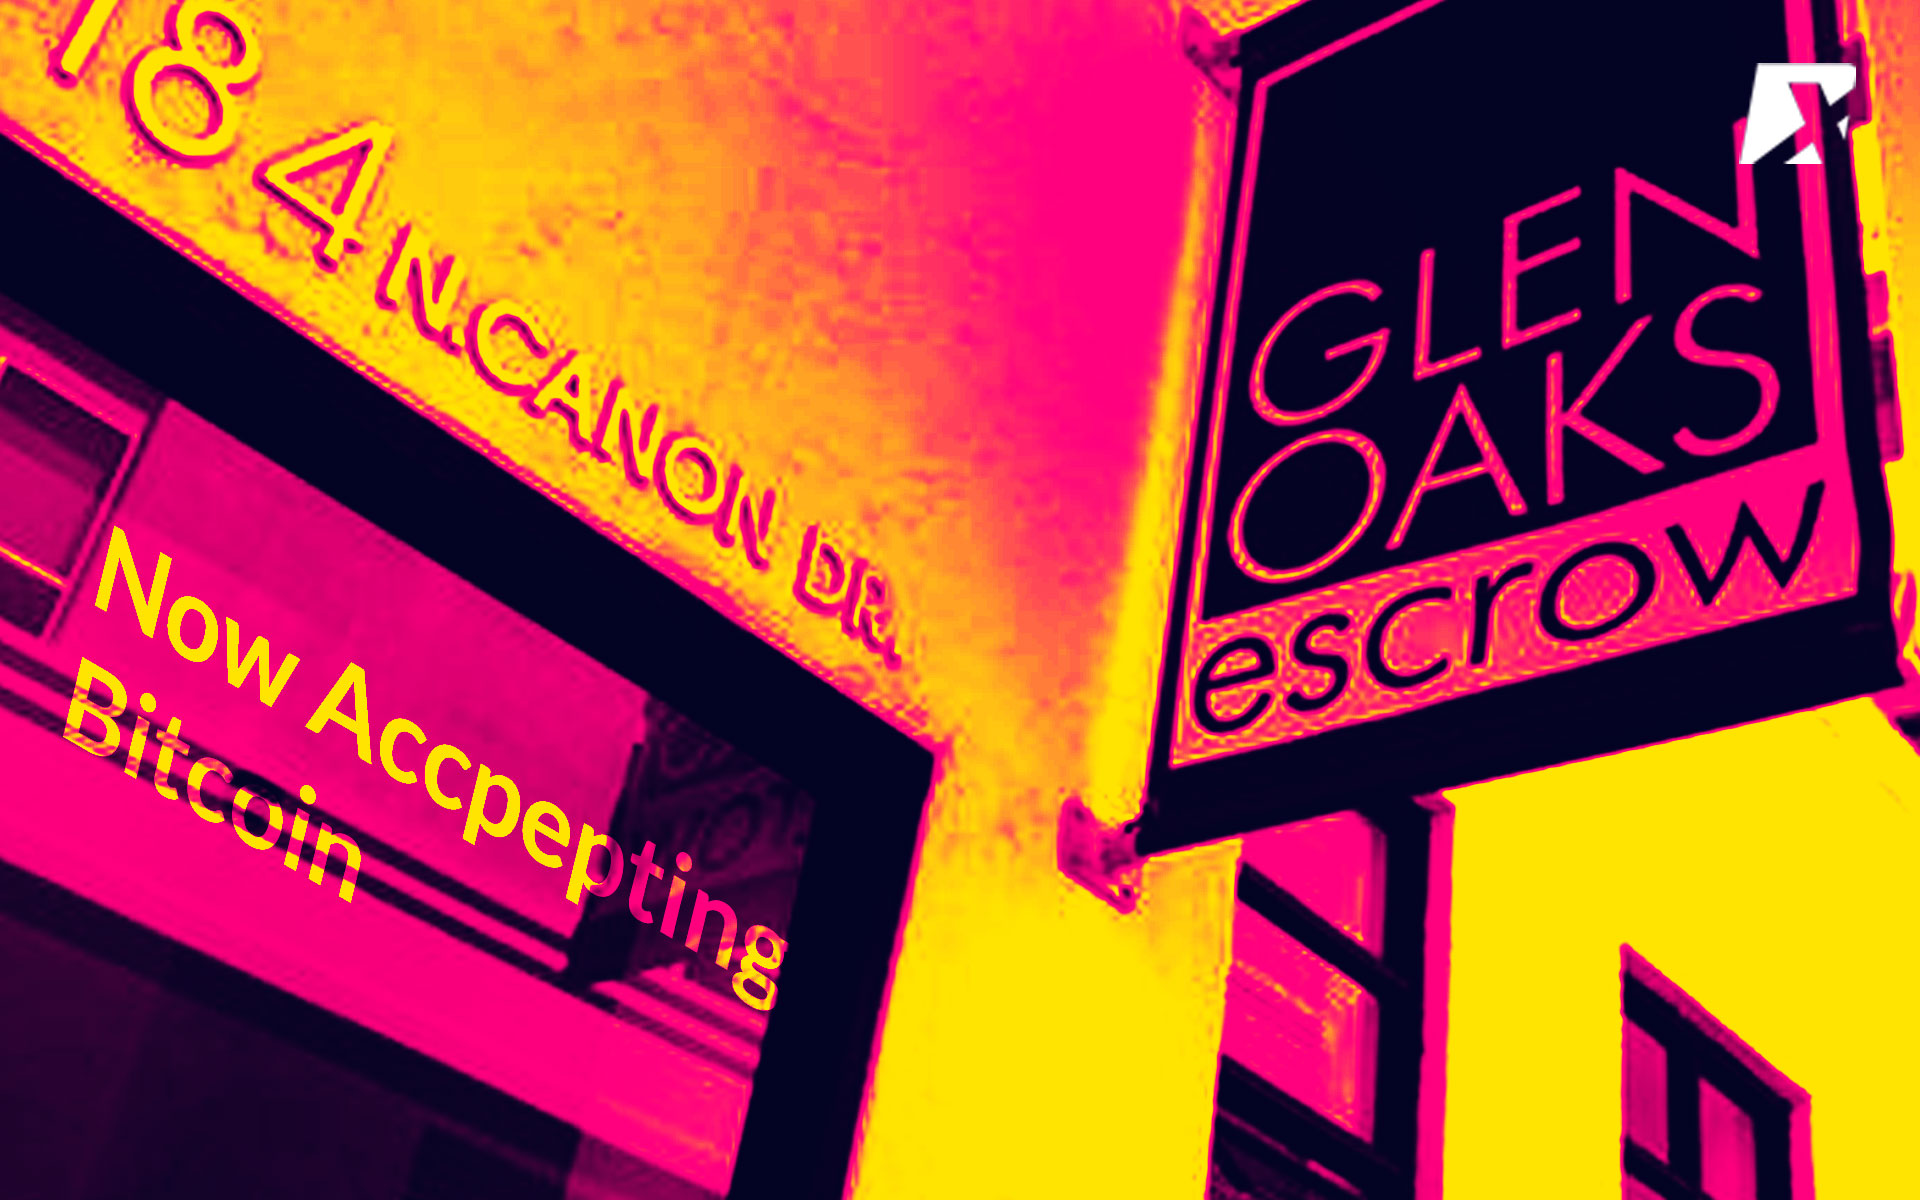 Glen Oaks Escrow Will Integrate BitPay To Accept Bitcoin Payments